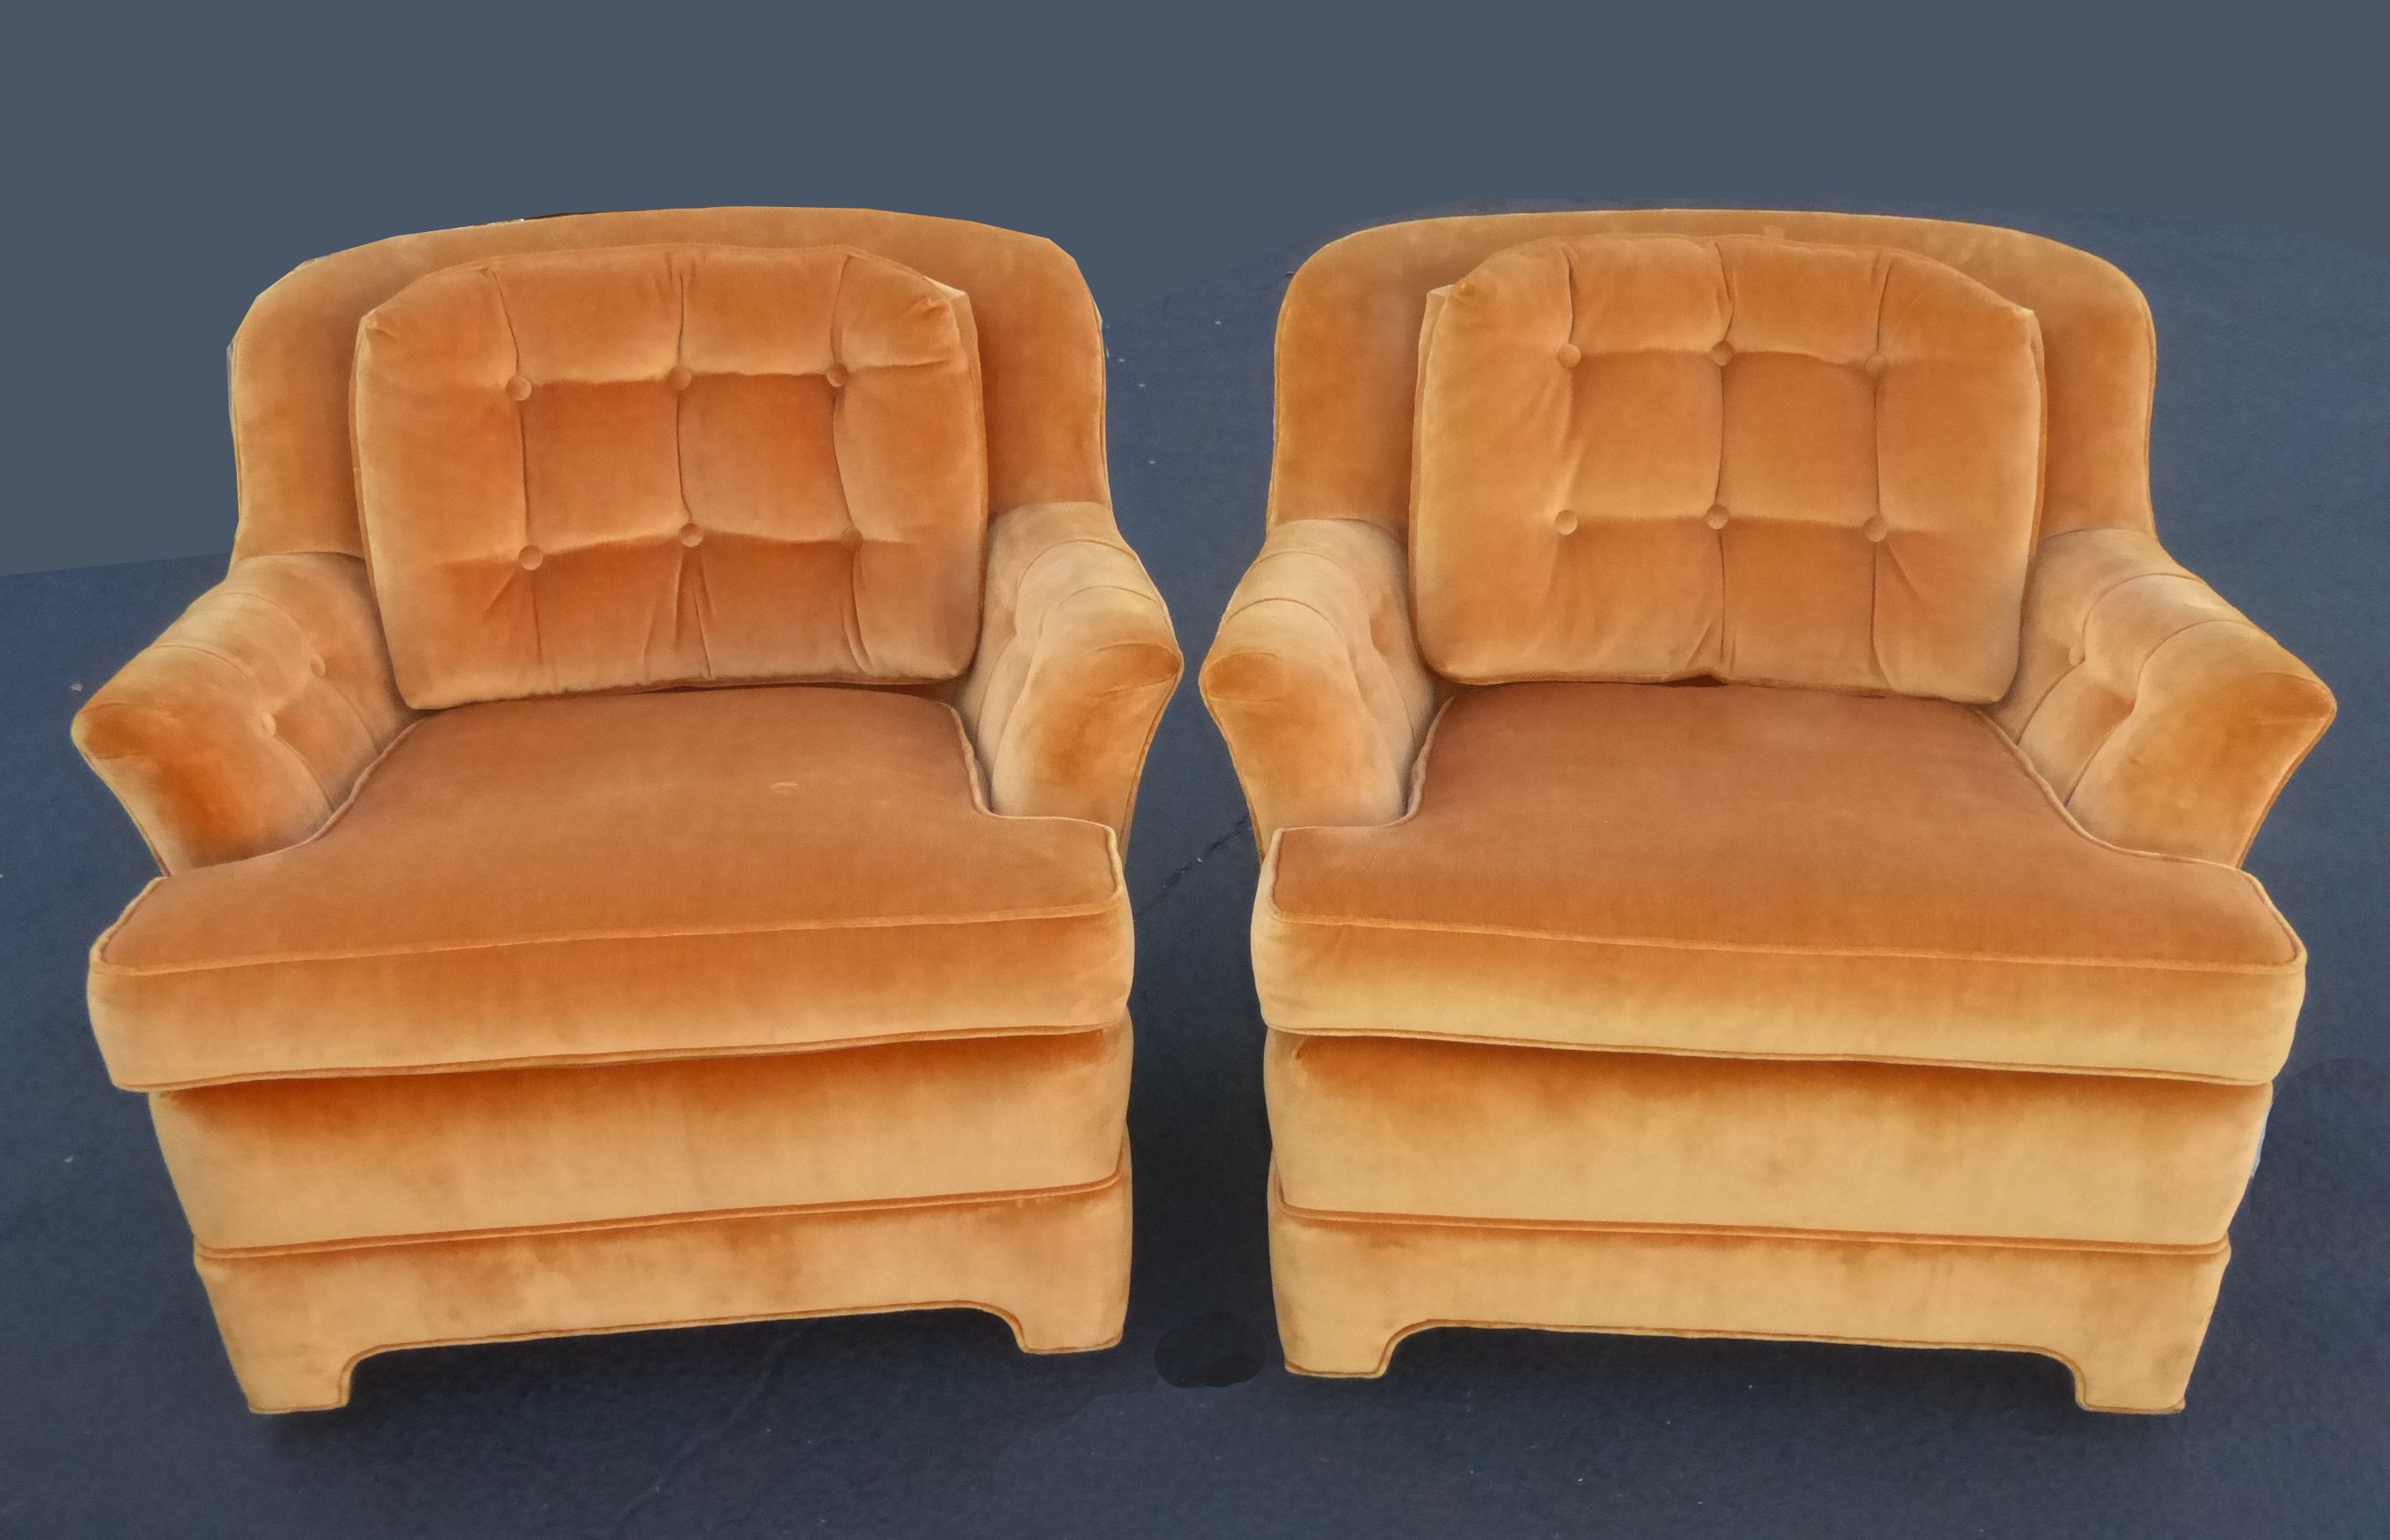 Mid Century Tufted Orange Velvet Accent Chairs   A Pair By Marge Carson    Image 5